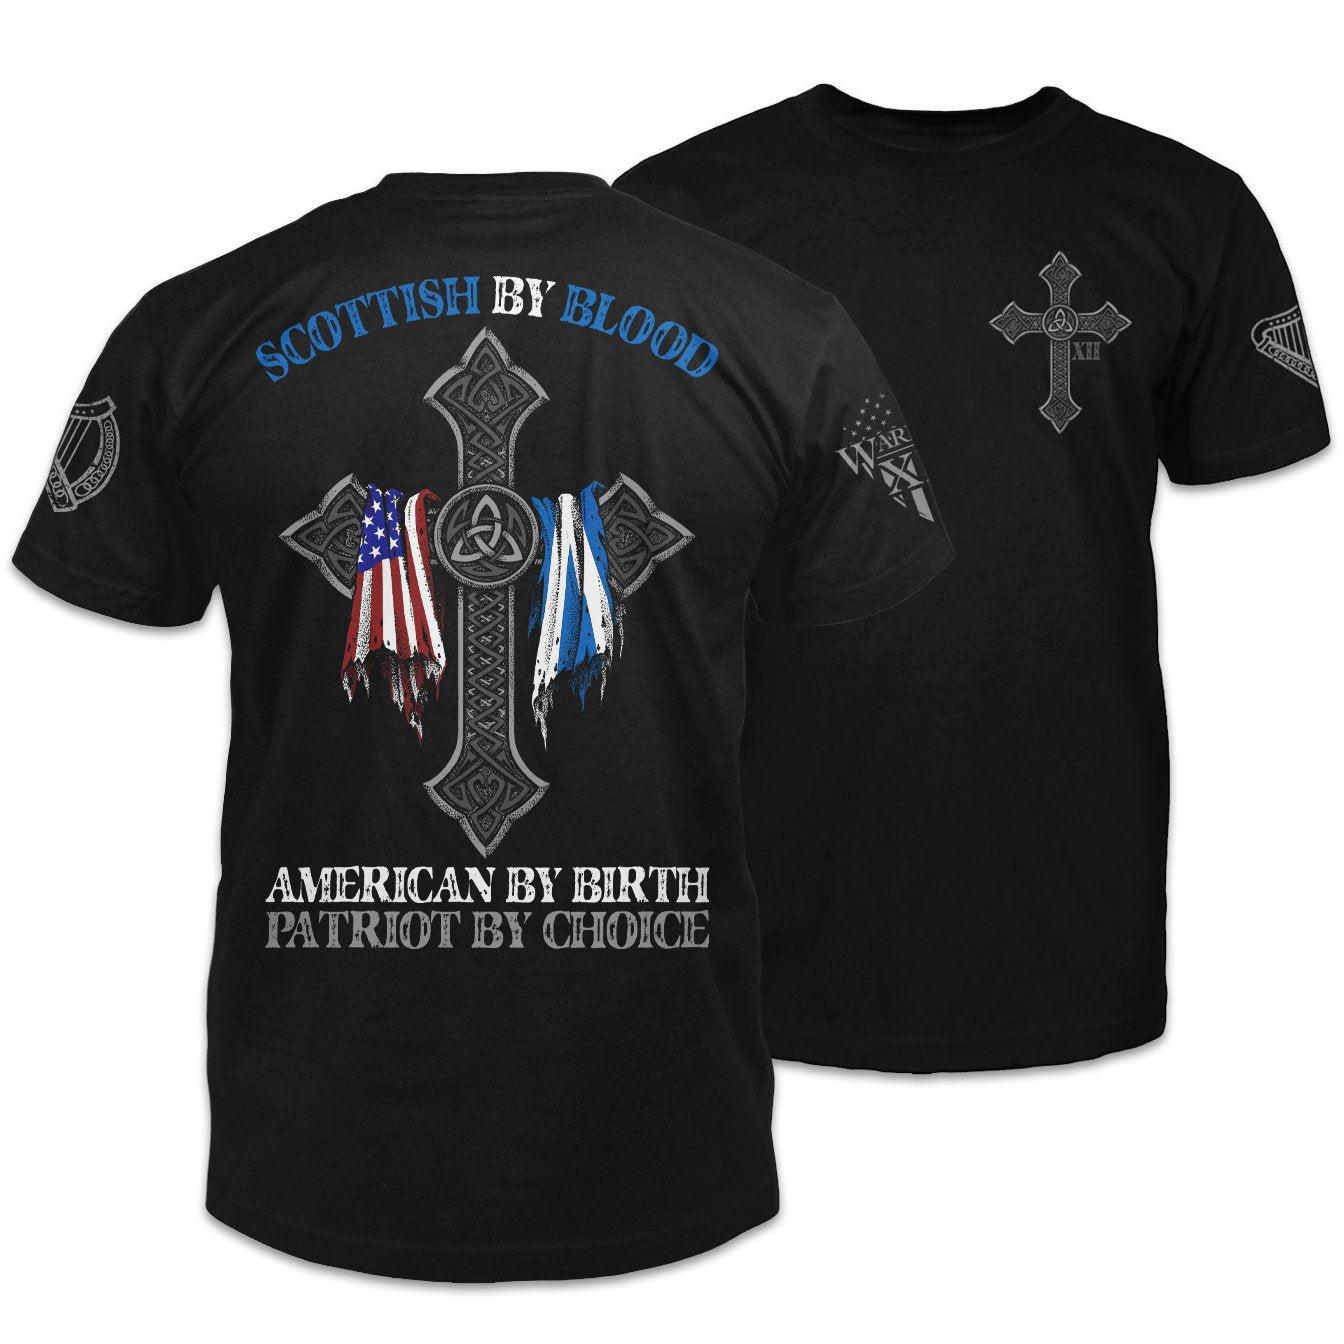 Scottish By Blood Shirt